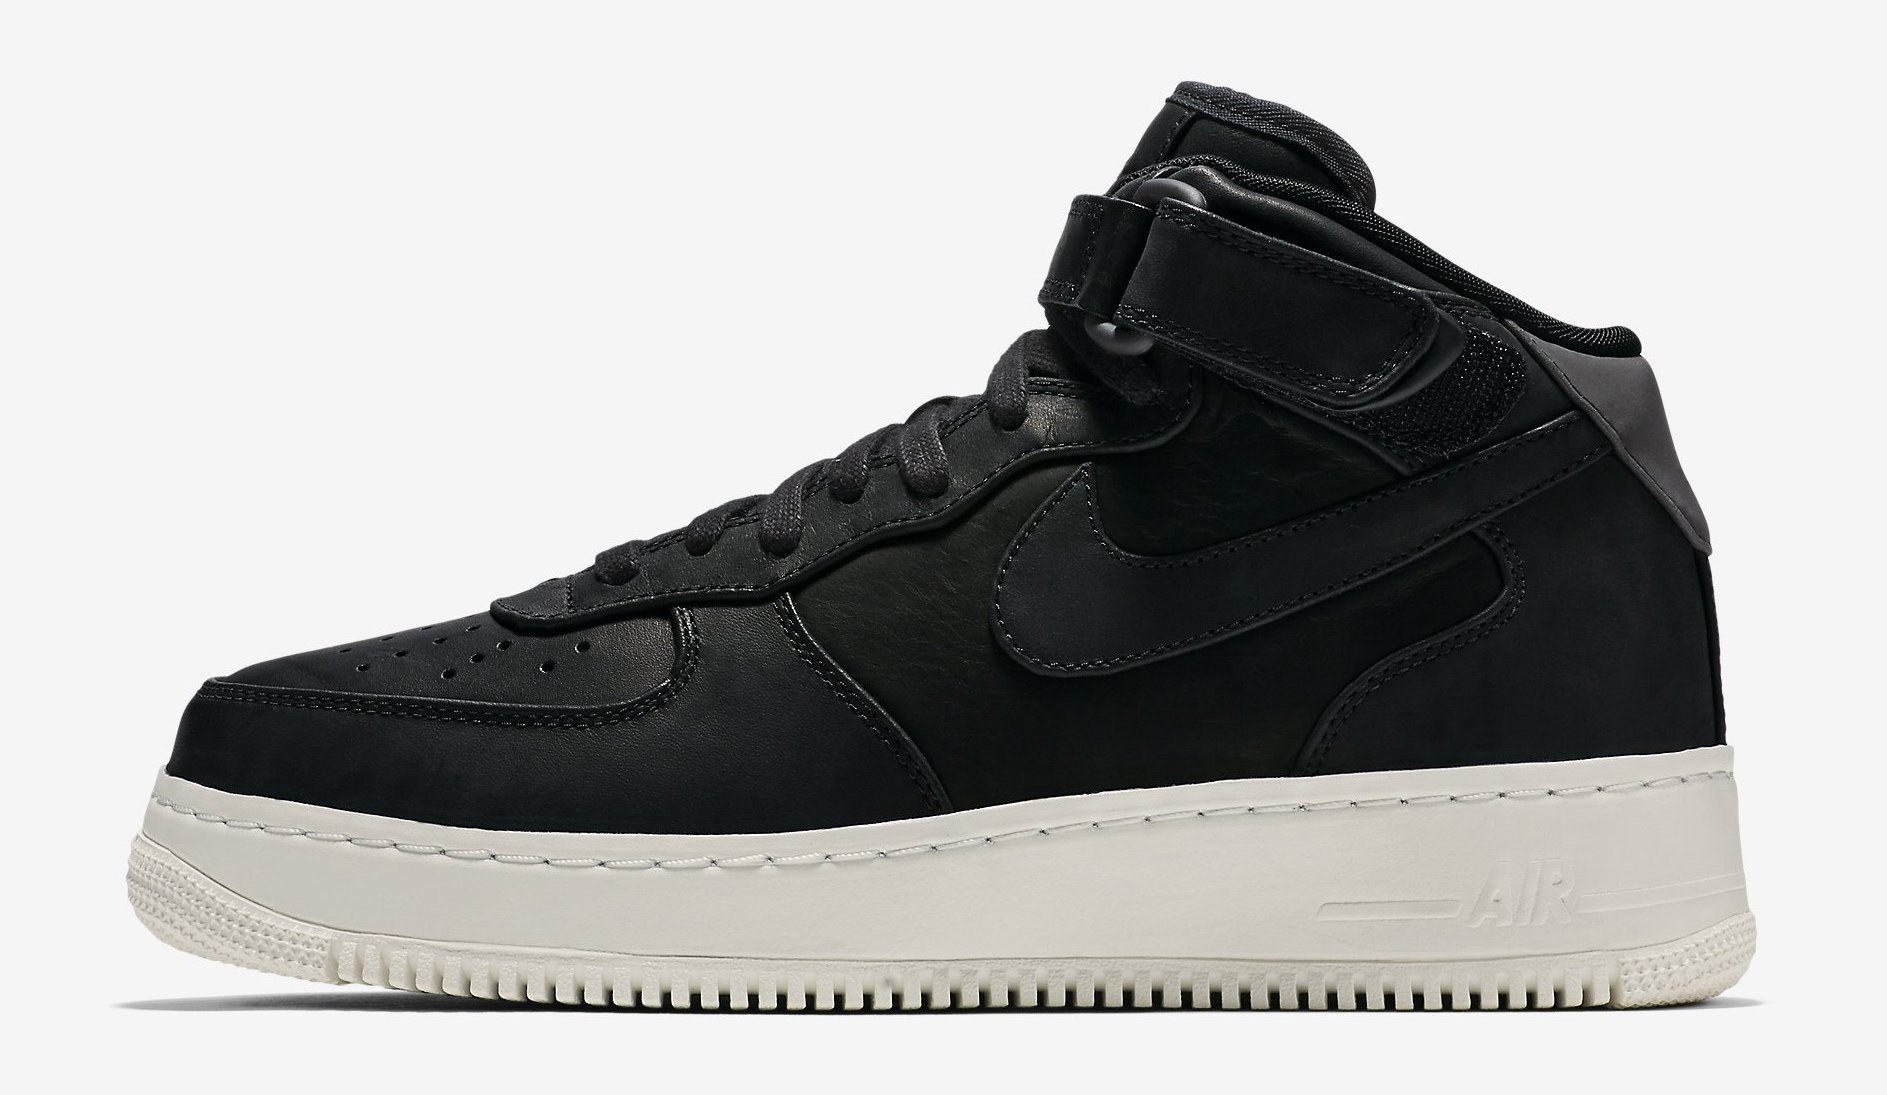 nike-air-force-1-mid-black-905619-001-profile